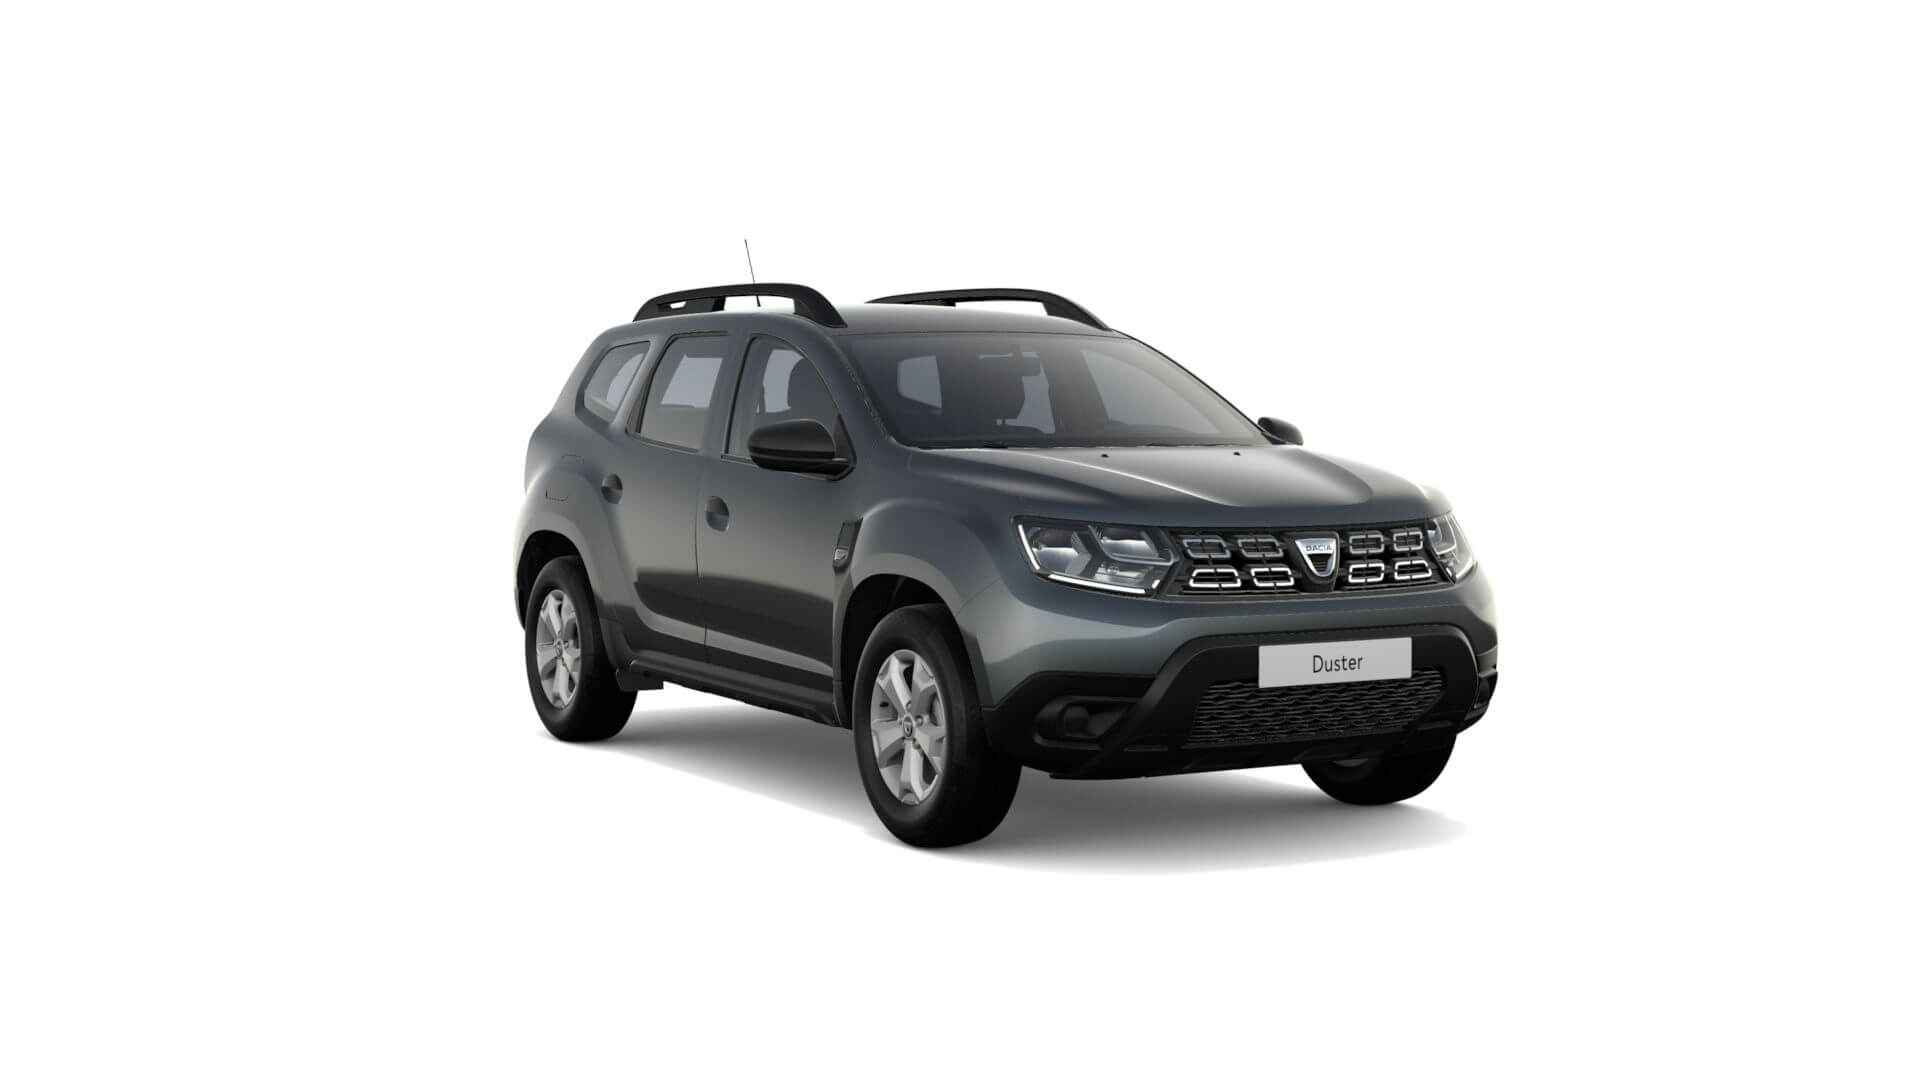 Automodell Anthrazit - Dacia Duster - Renault Ahrens Hannover